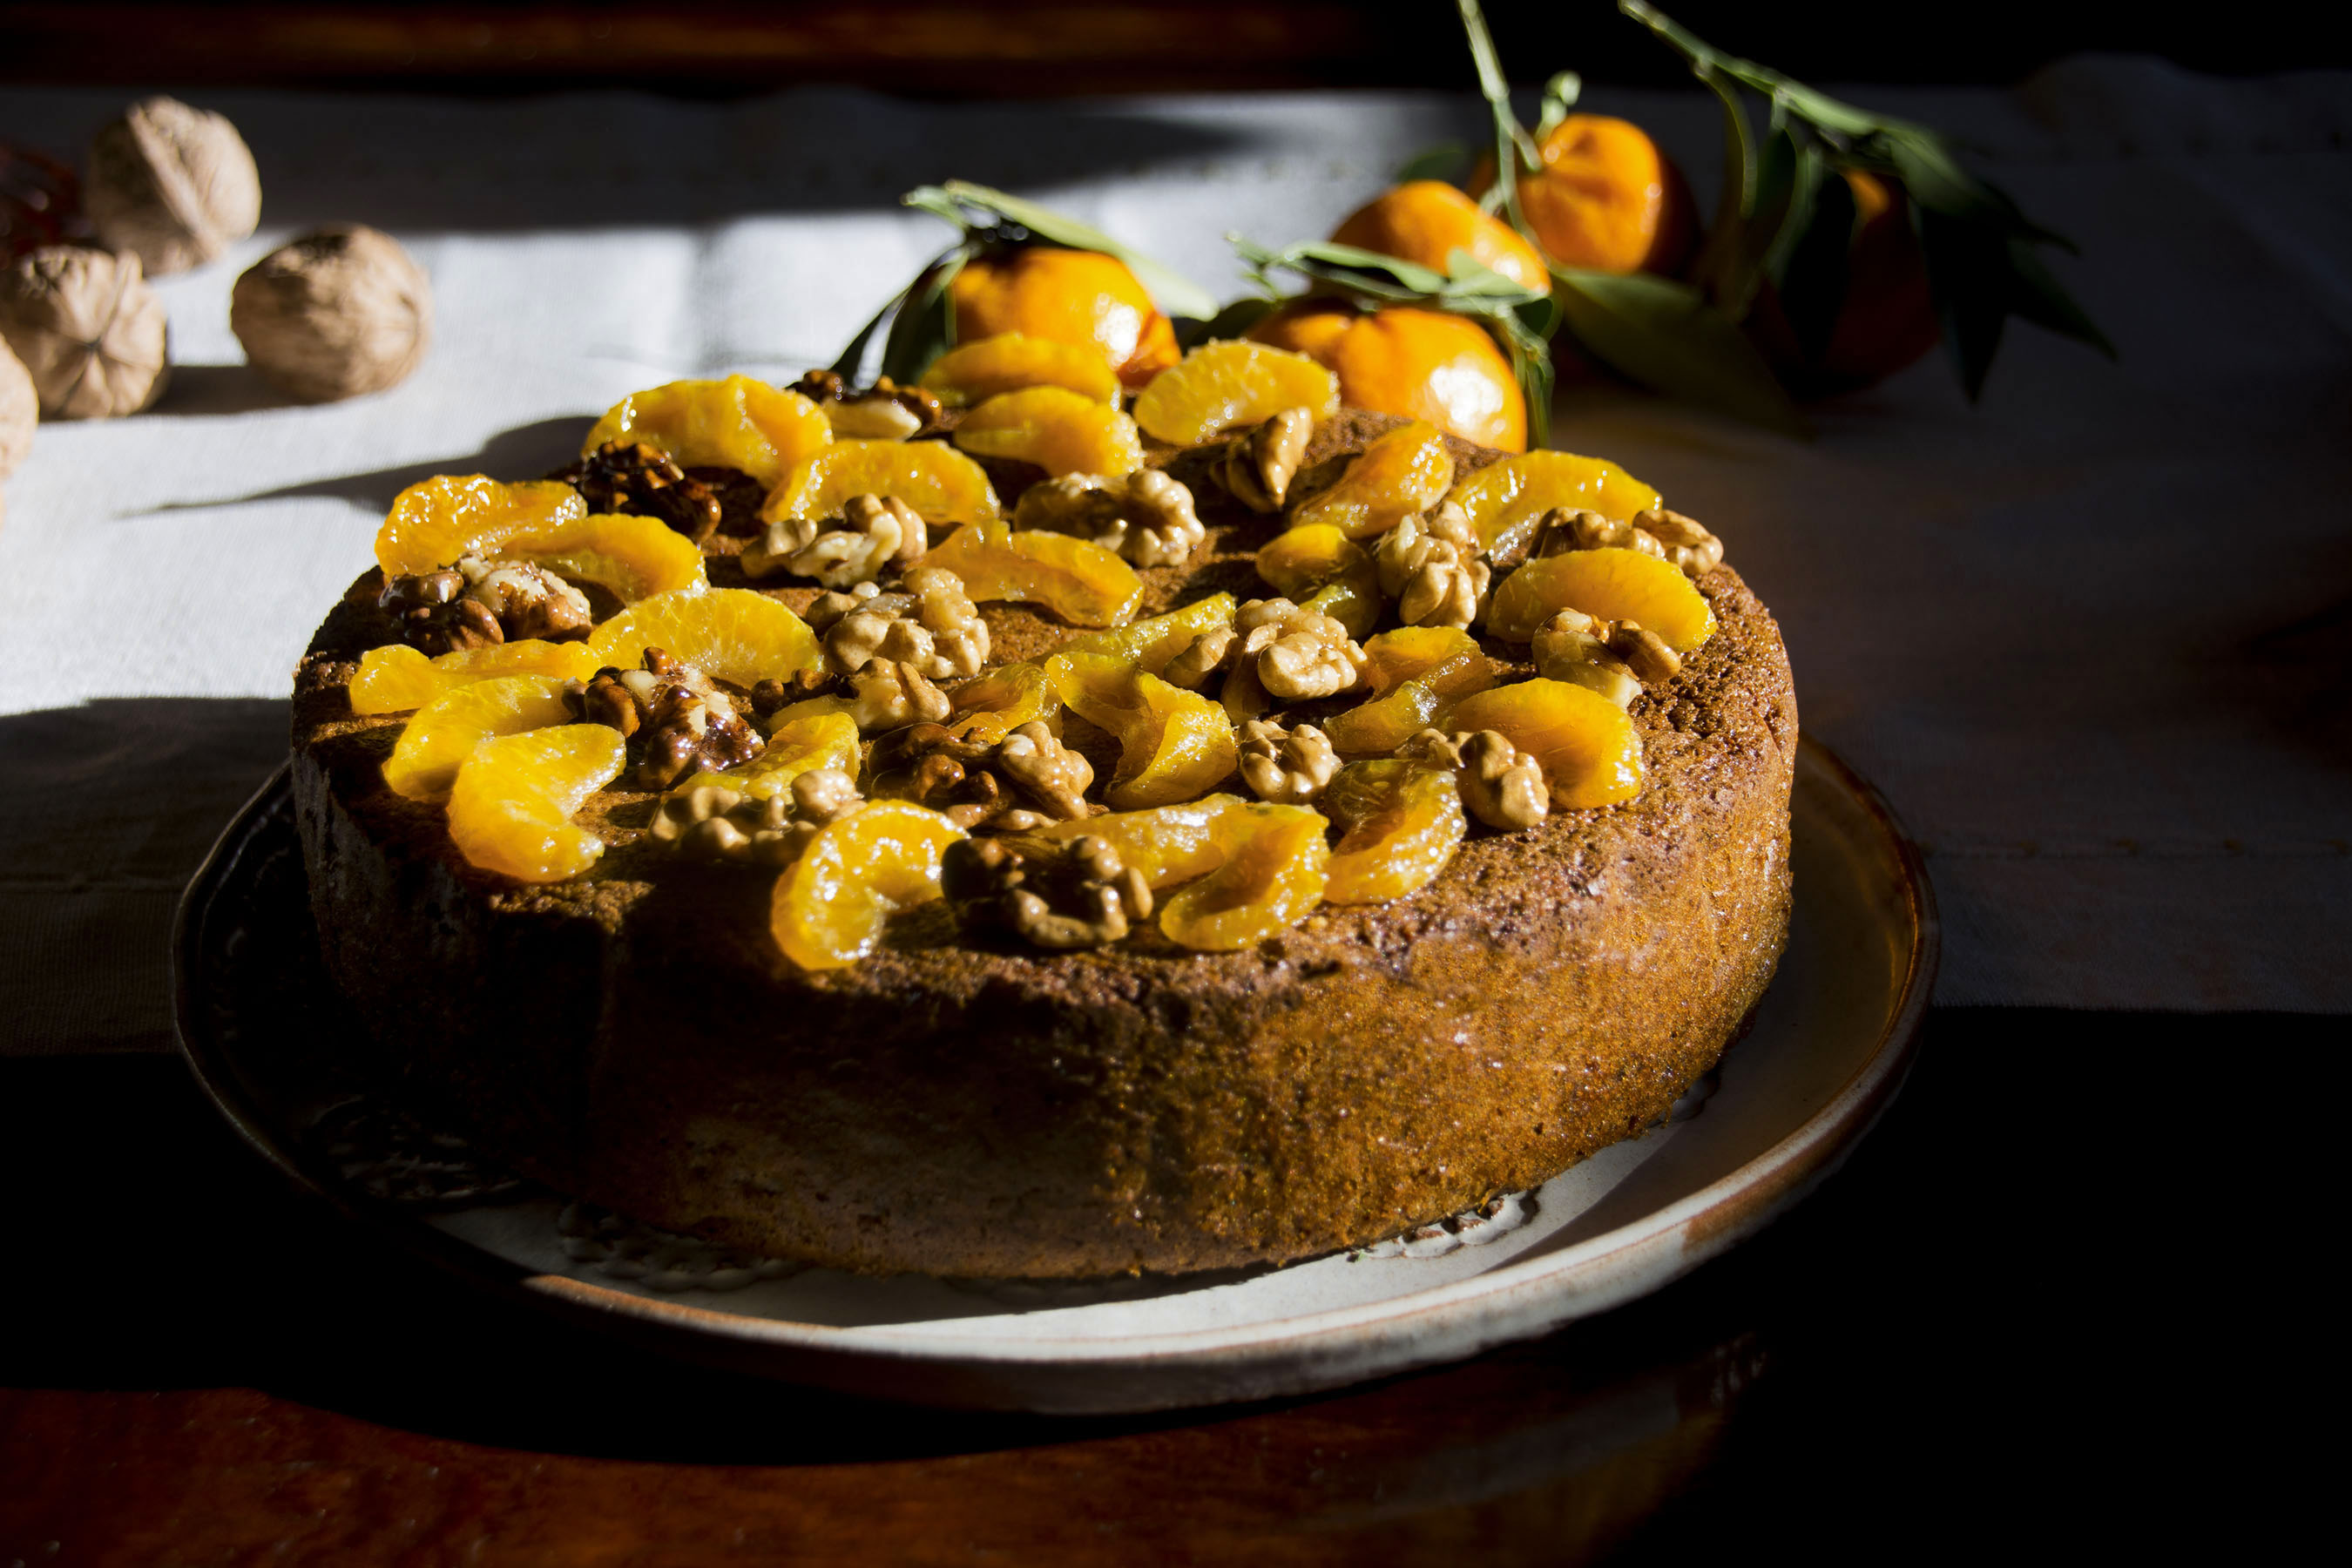 Tangerine, walnut and dark chocolate flourless torta